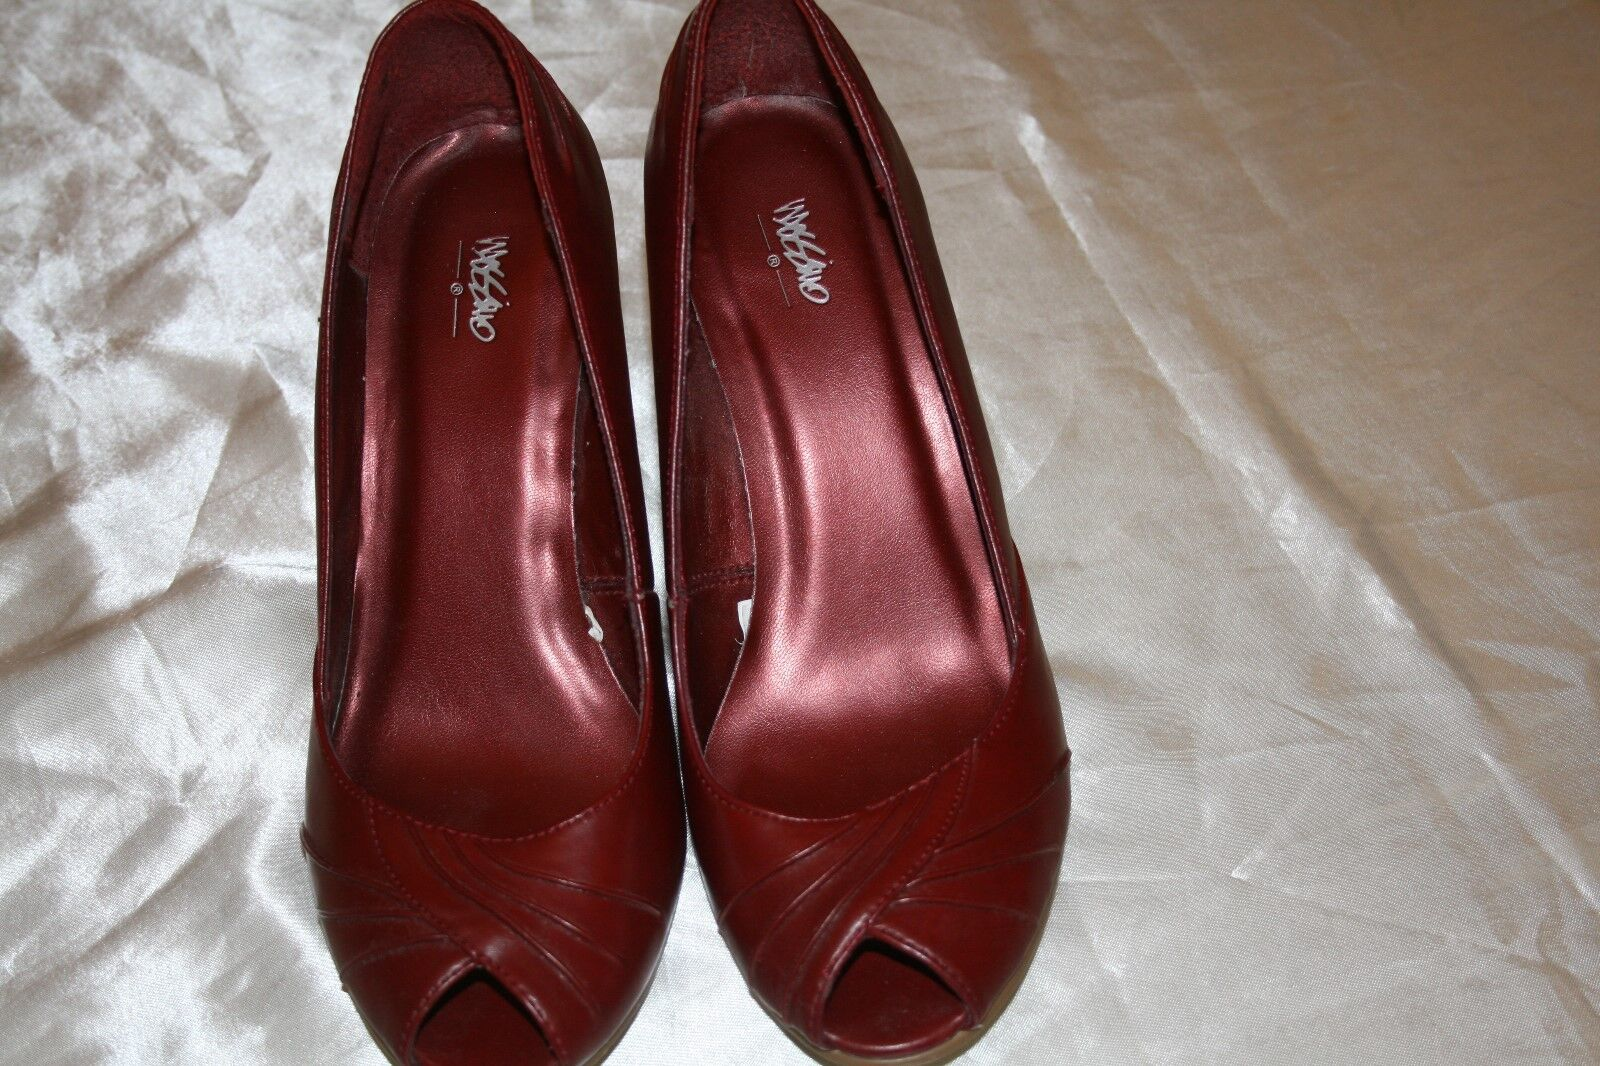 Mossimo Brownish Red Style 096082711 Shoes 3.5